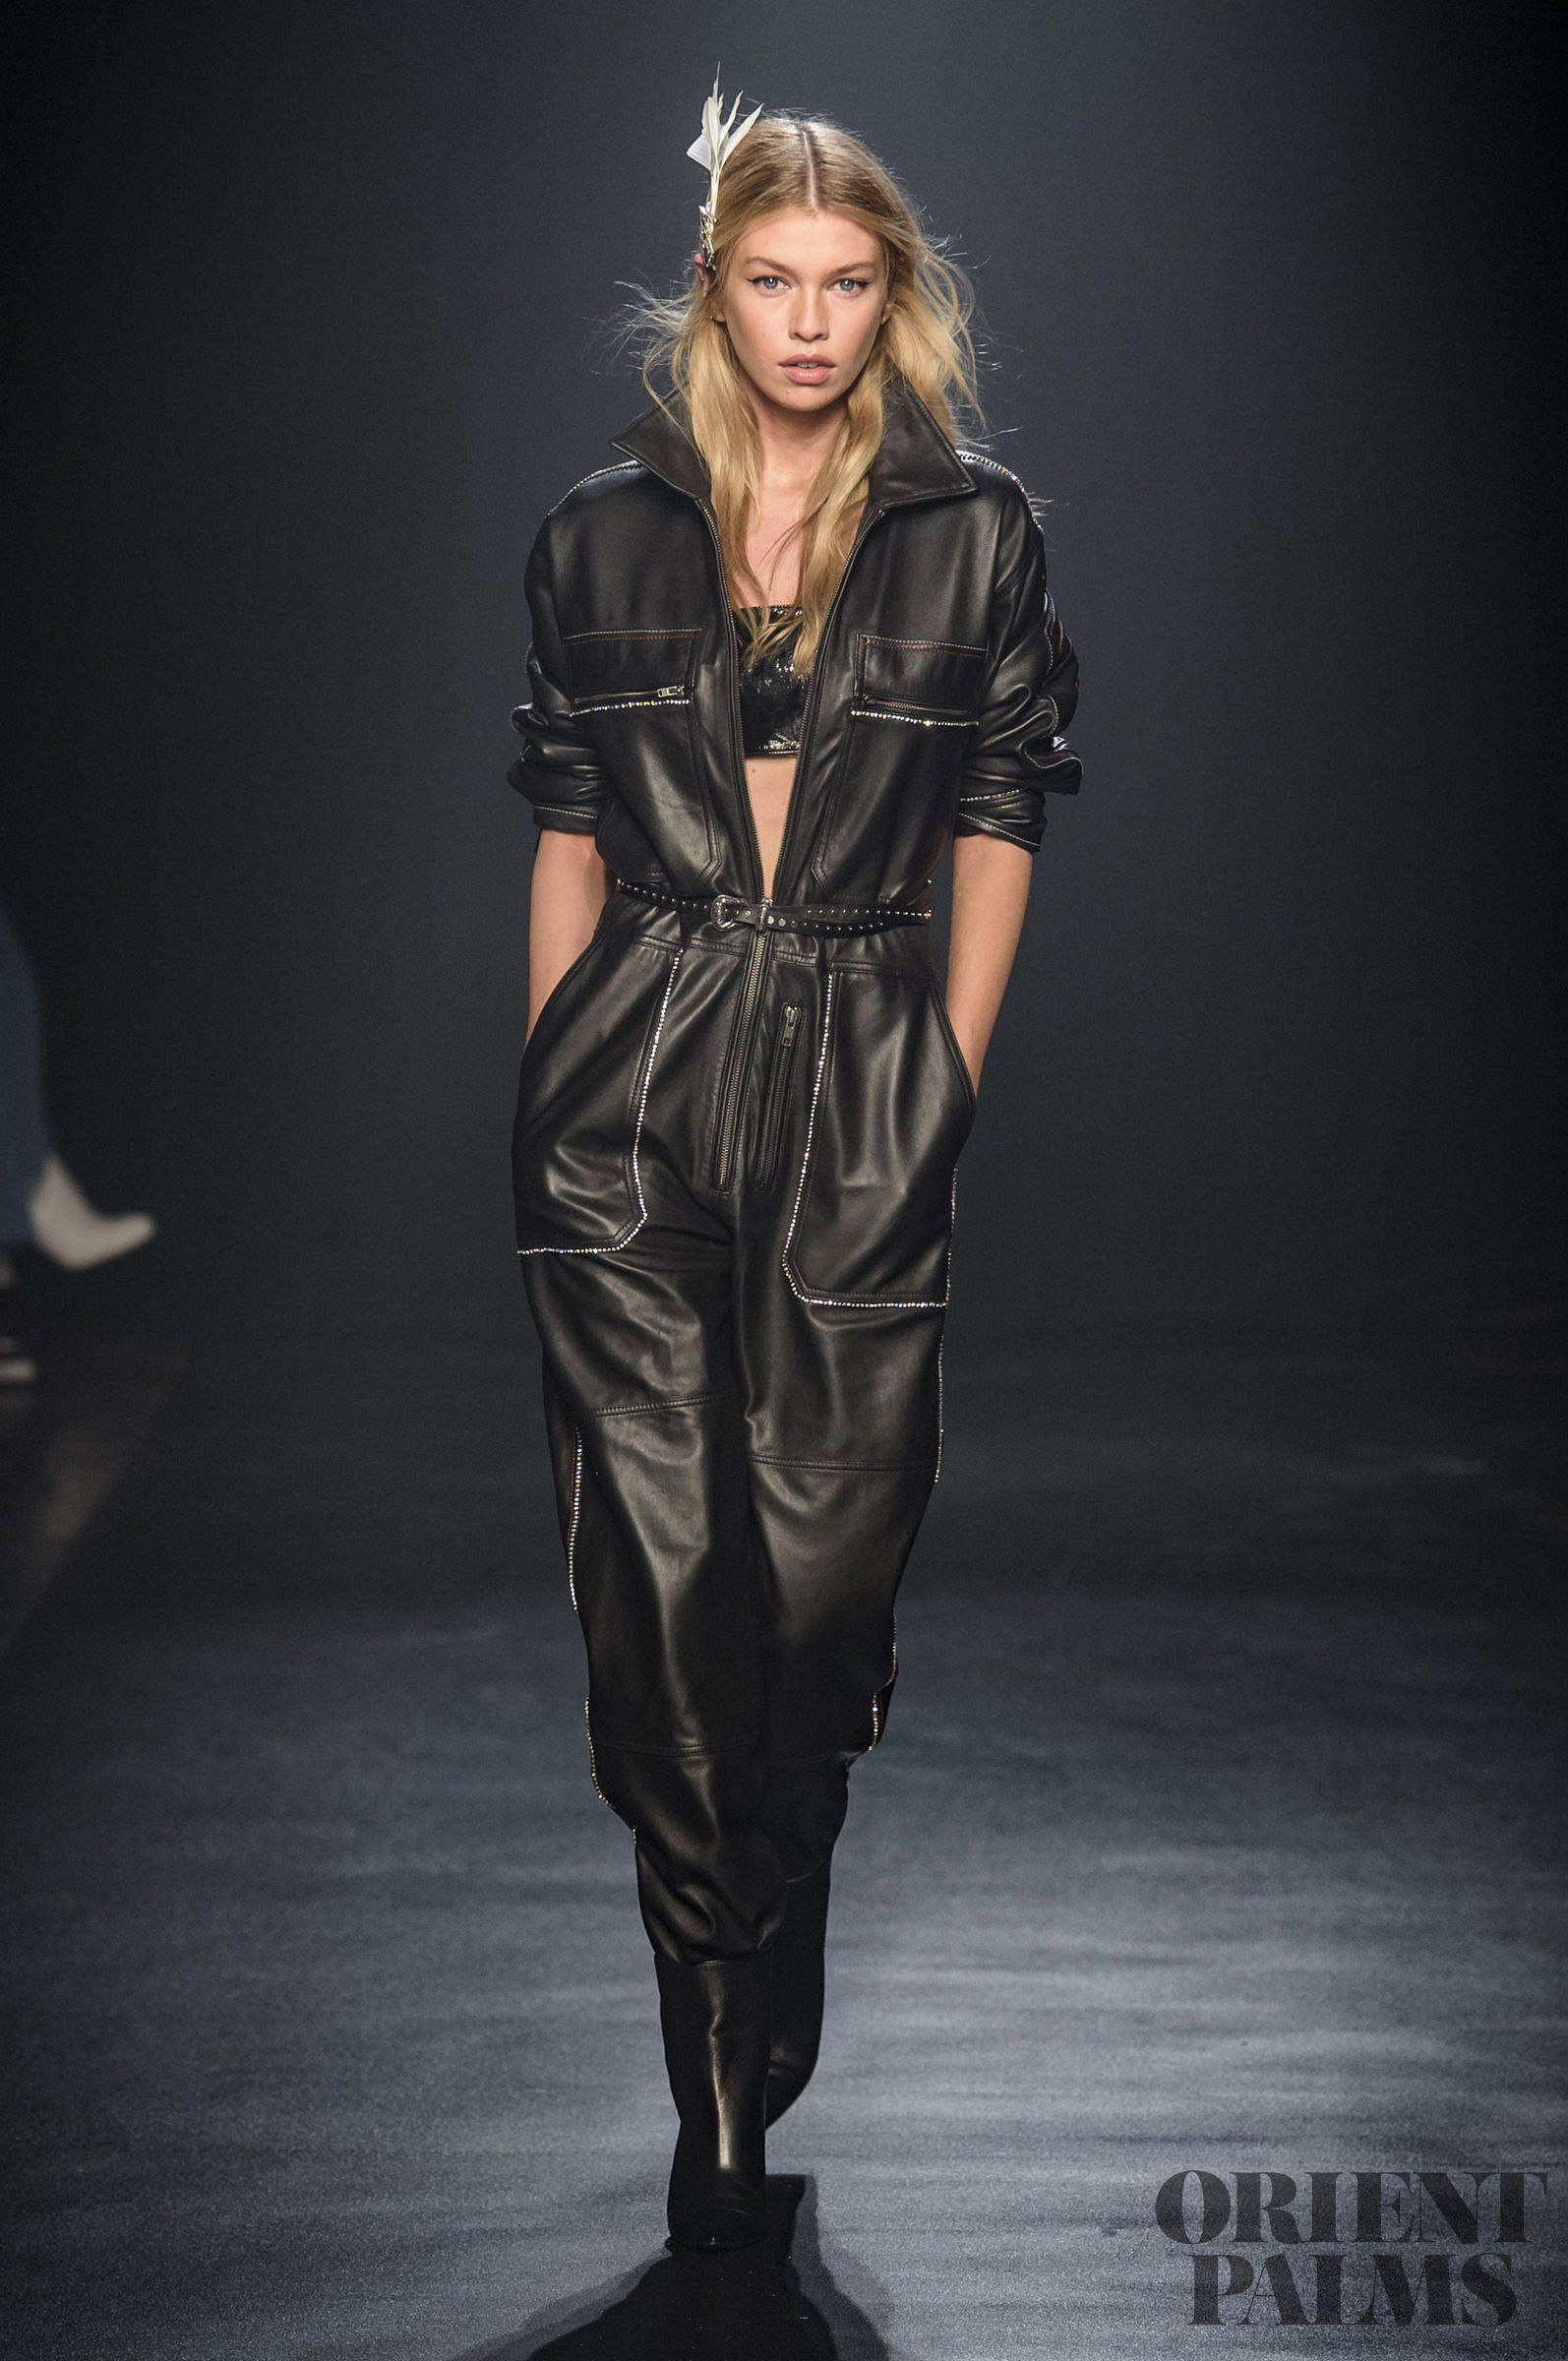 Zadig Voltaire's Fall Winter 2019 RTW Line Mixed New York Street Energy With Parisian Softness